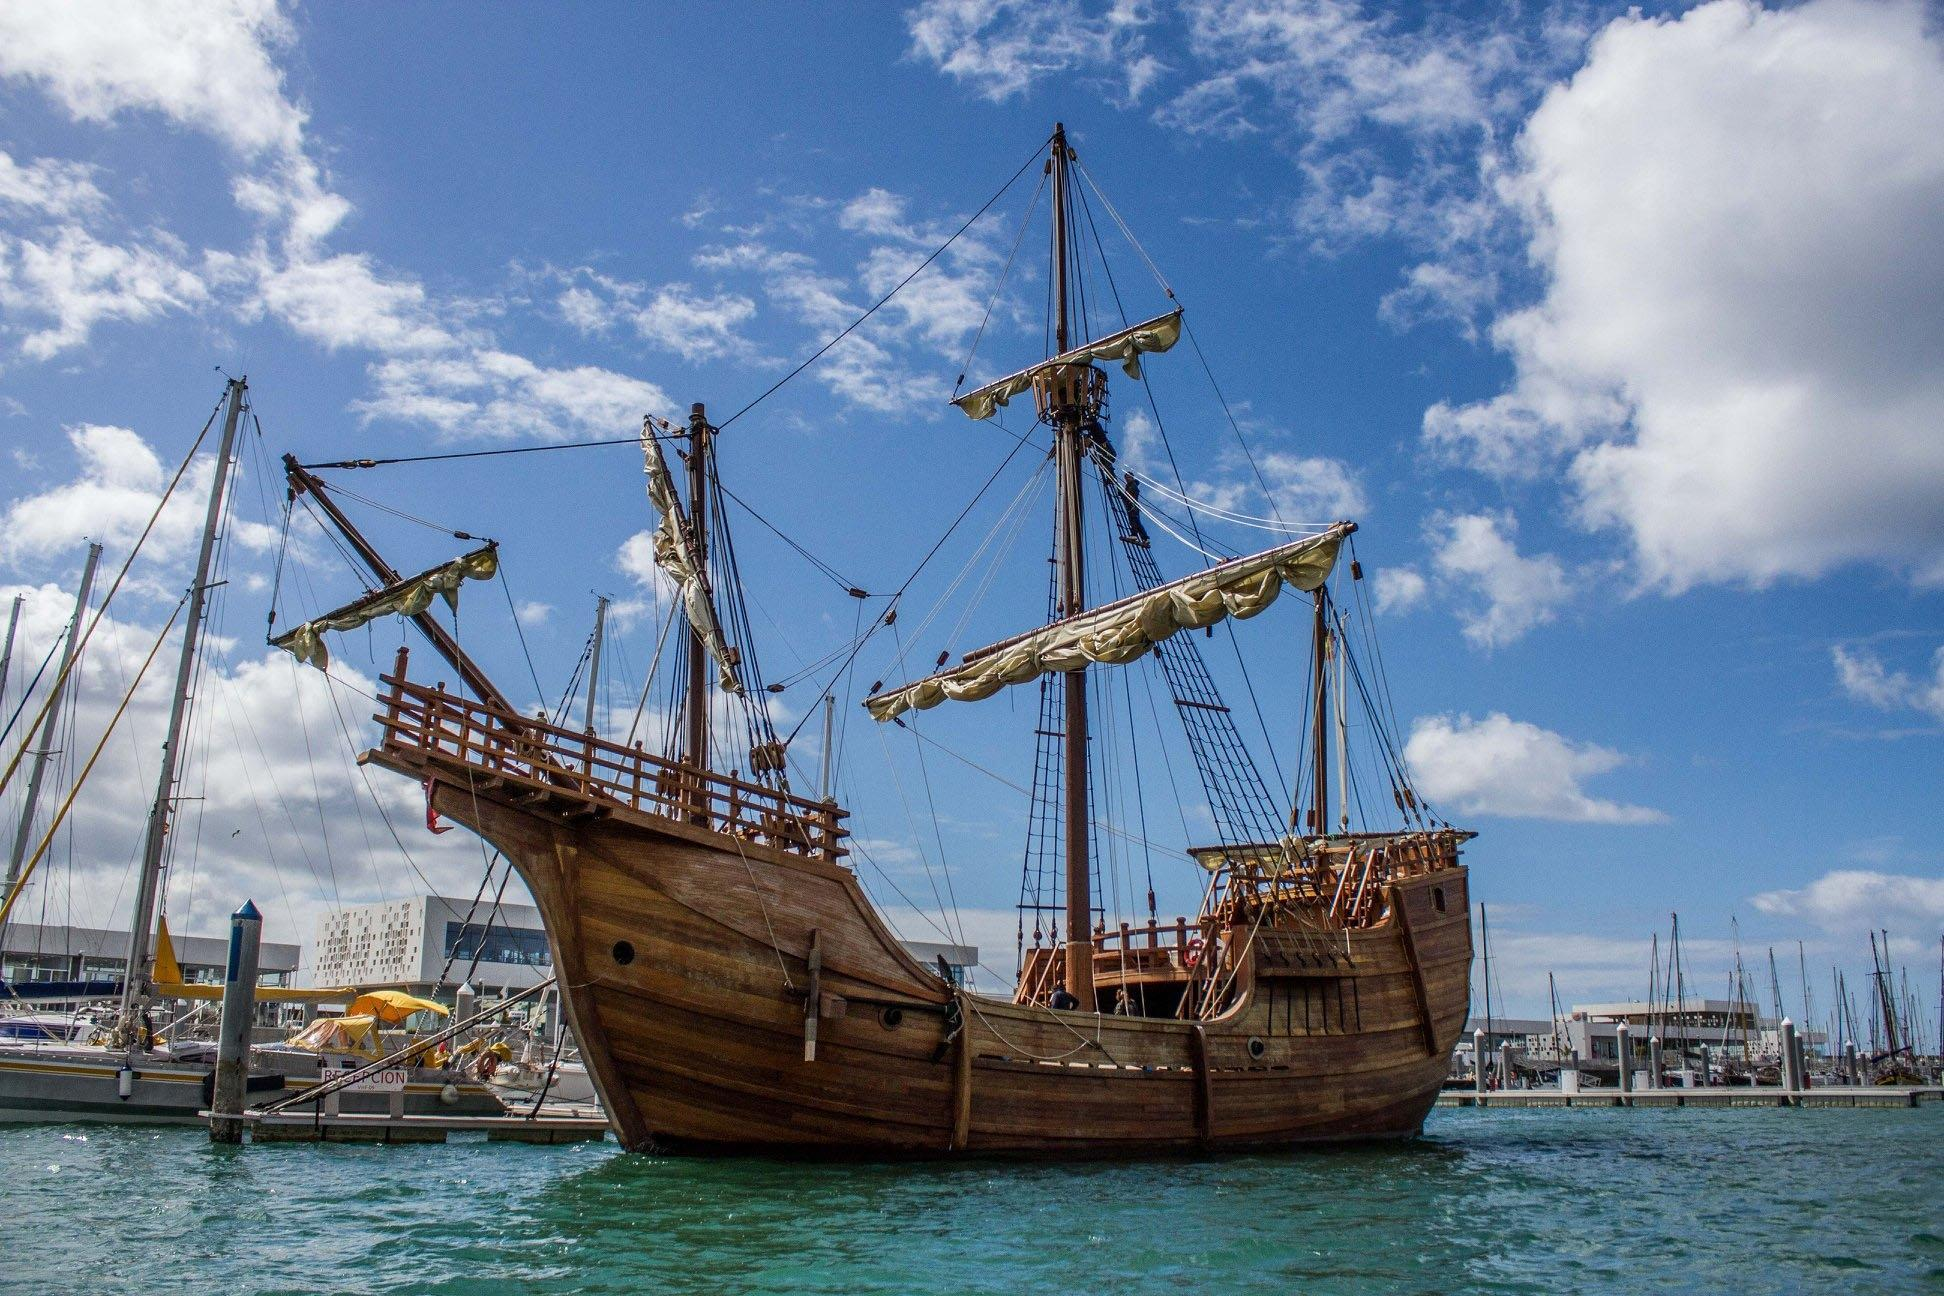 The tall ship arrives at the resort on August 11